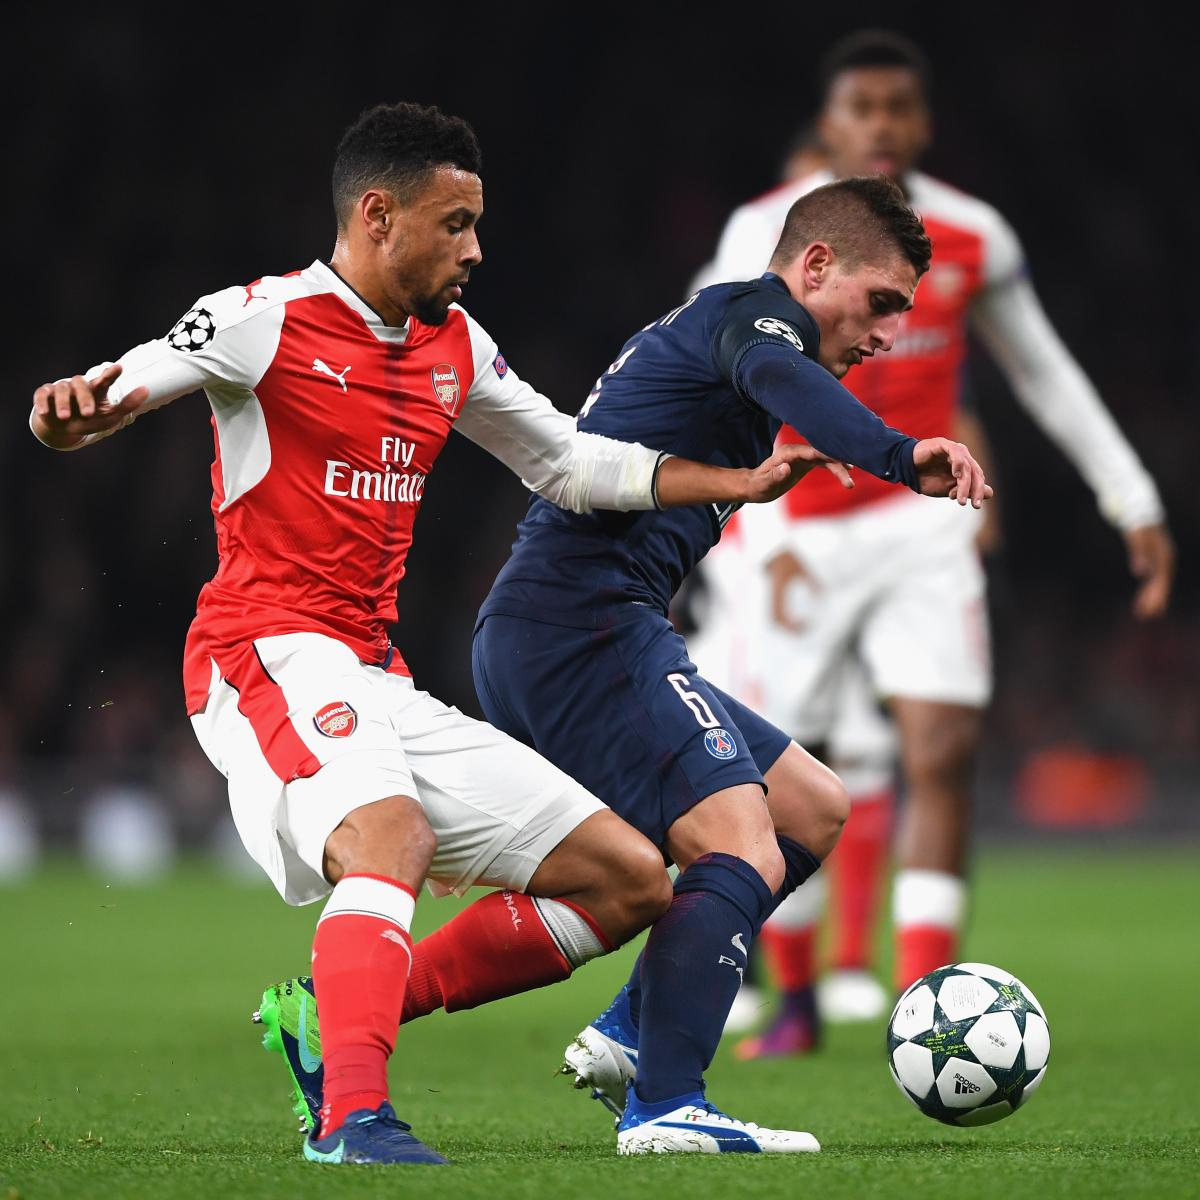 Arsenal Vs Psg Score Reaction From 2016 Champions: Arsenal Vs. PSG: Live Score, Highlights From Champions